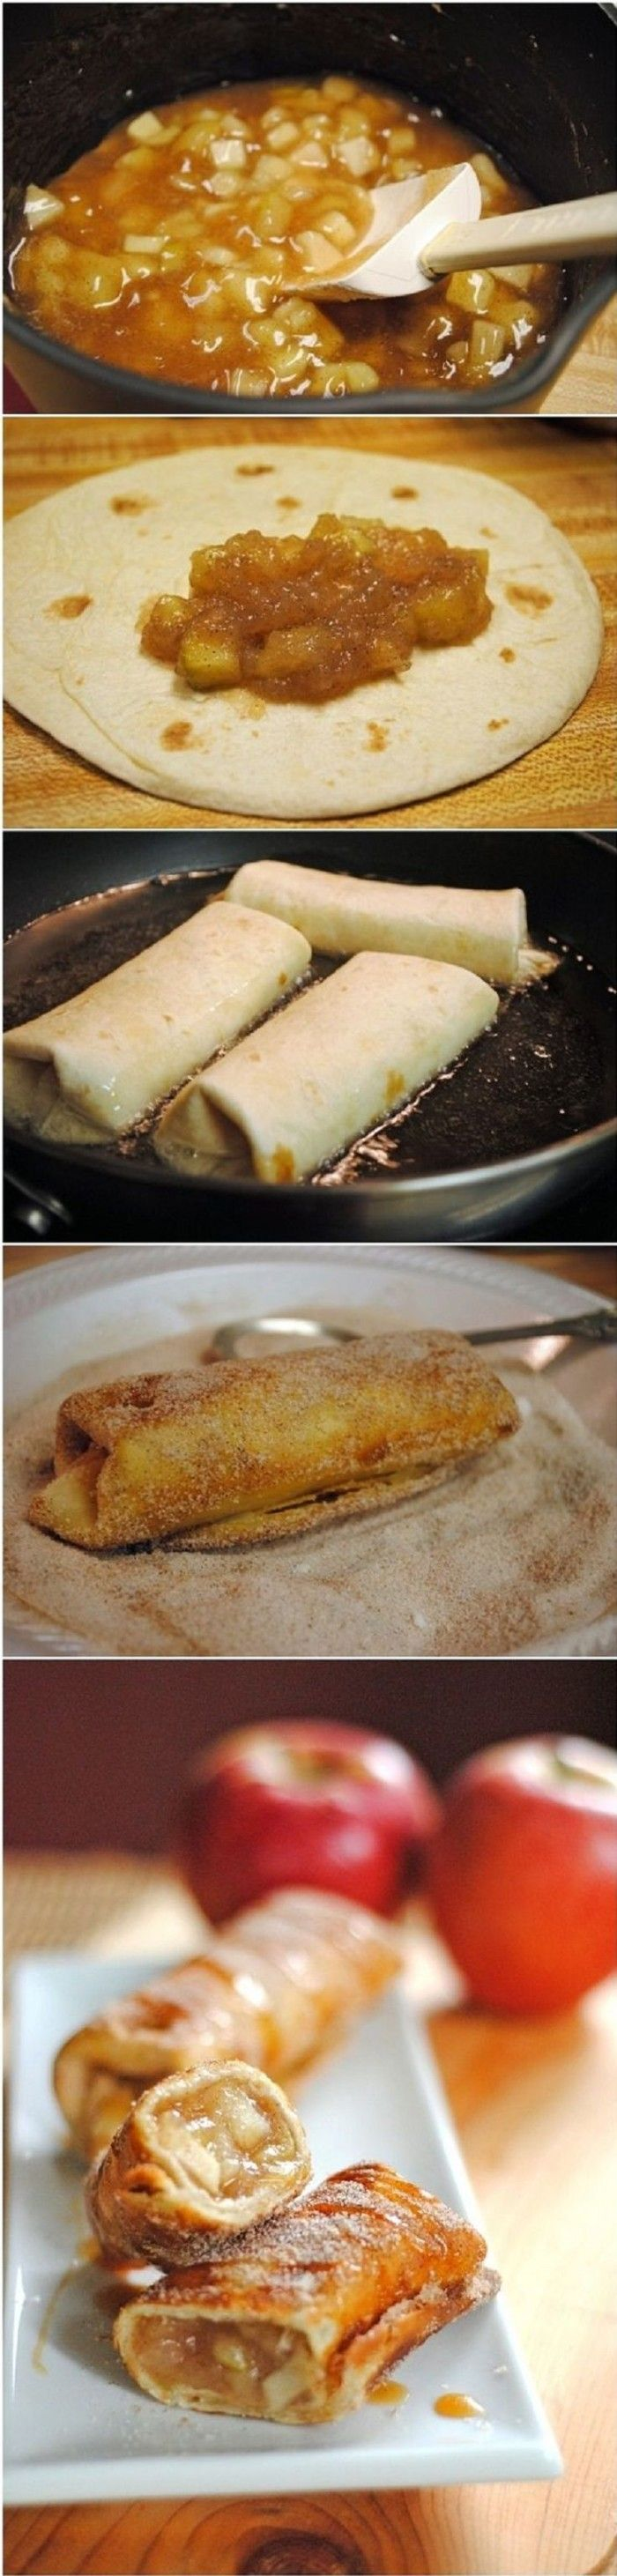 Cinnamon Apple Chimichangas | CookJino